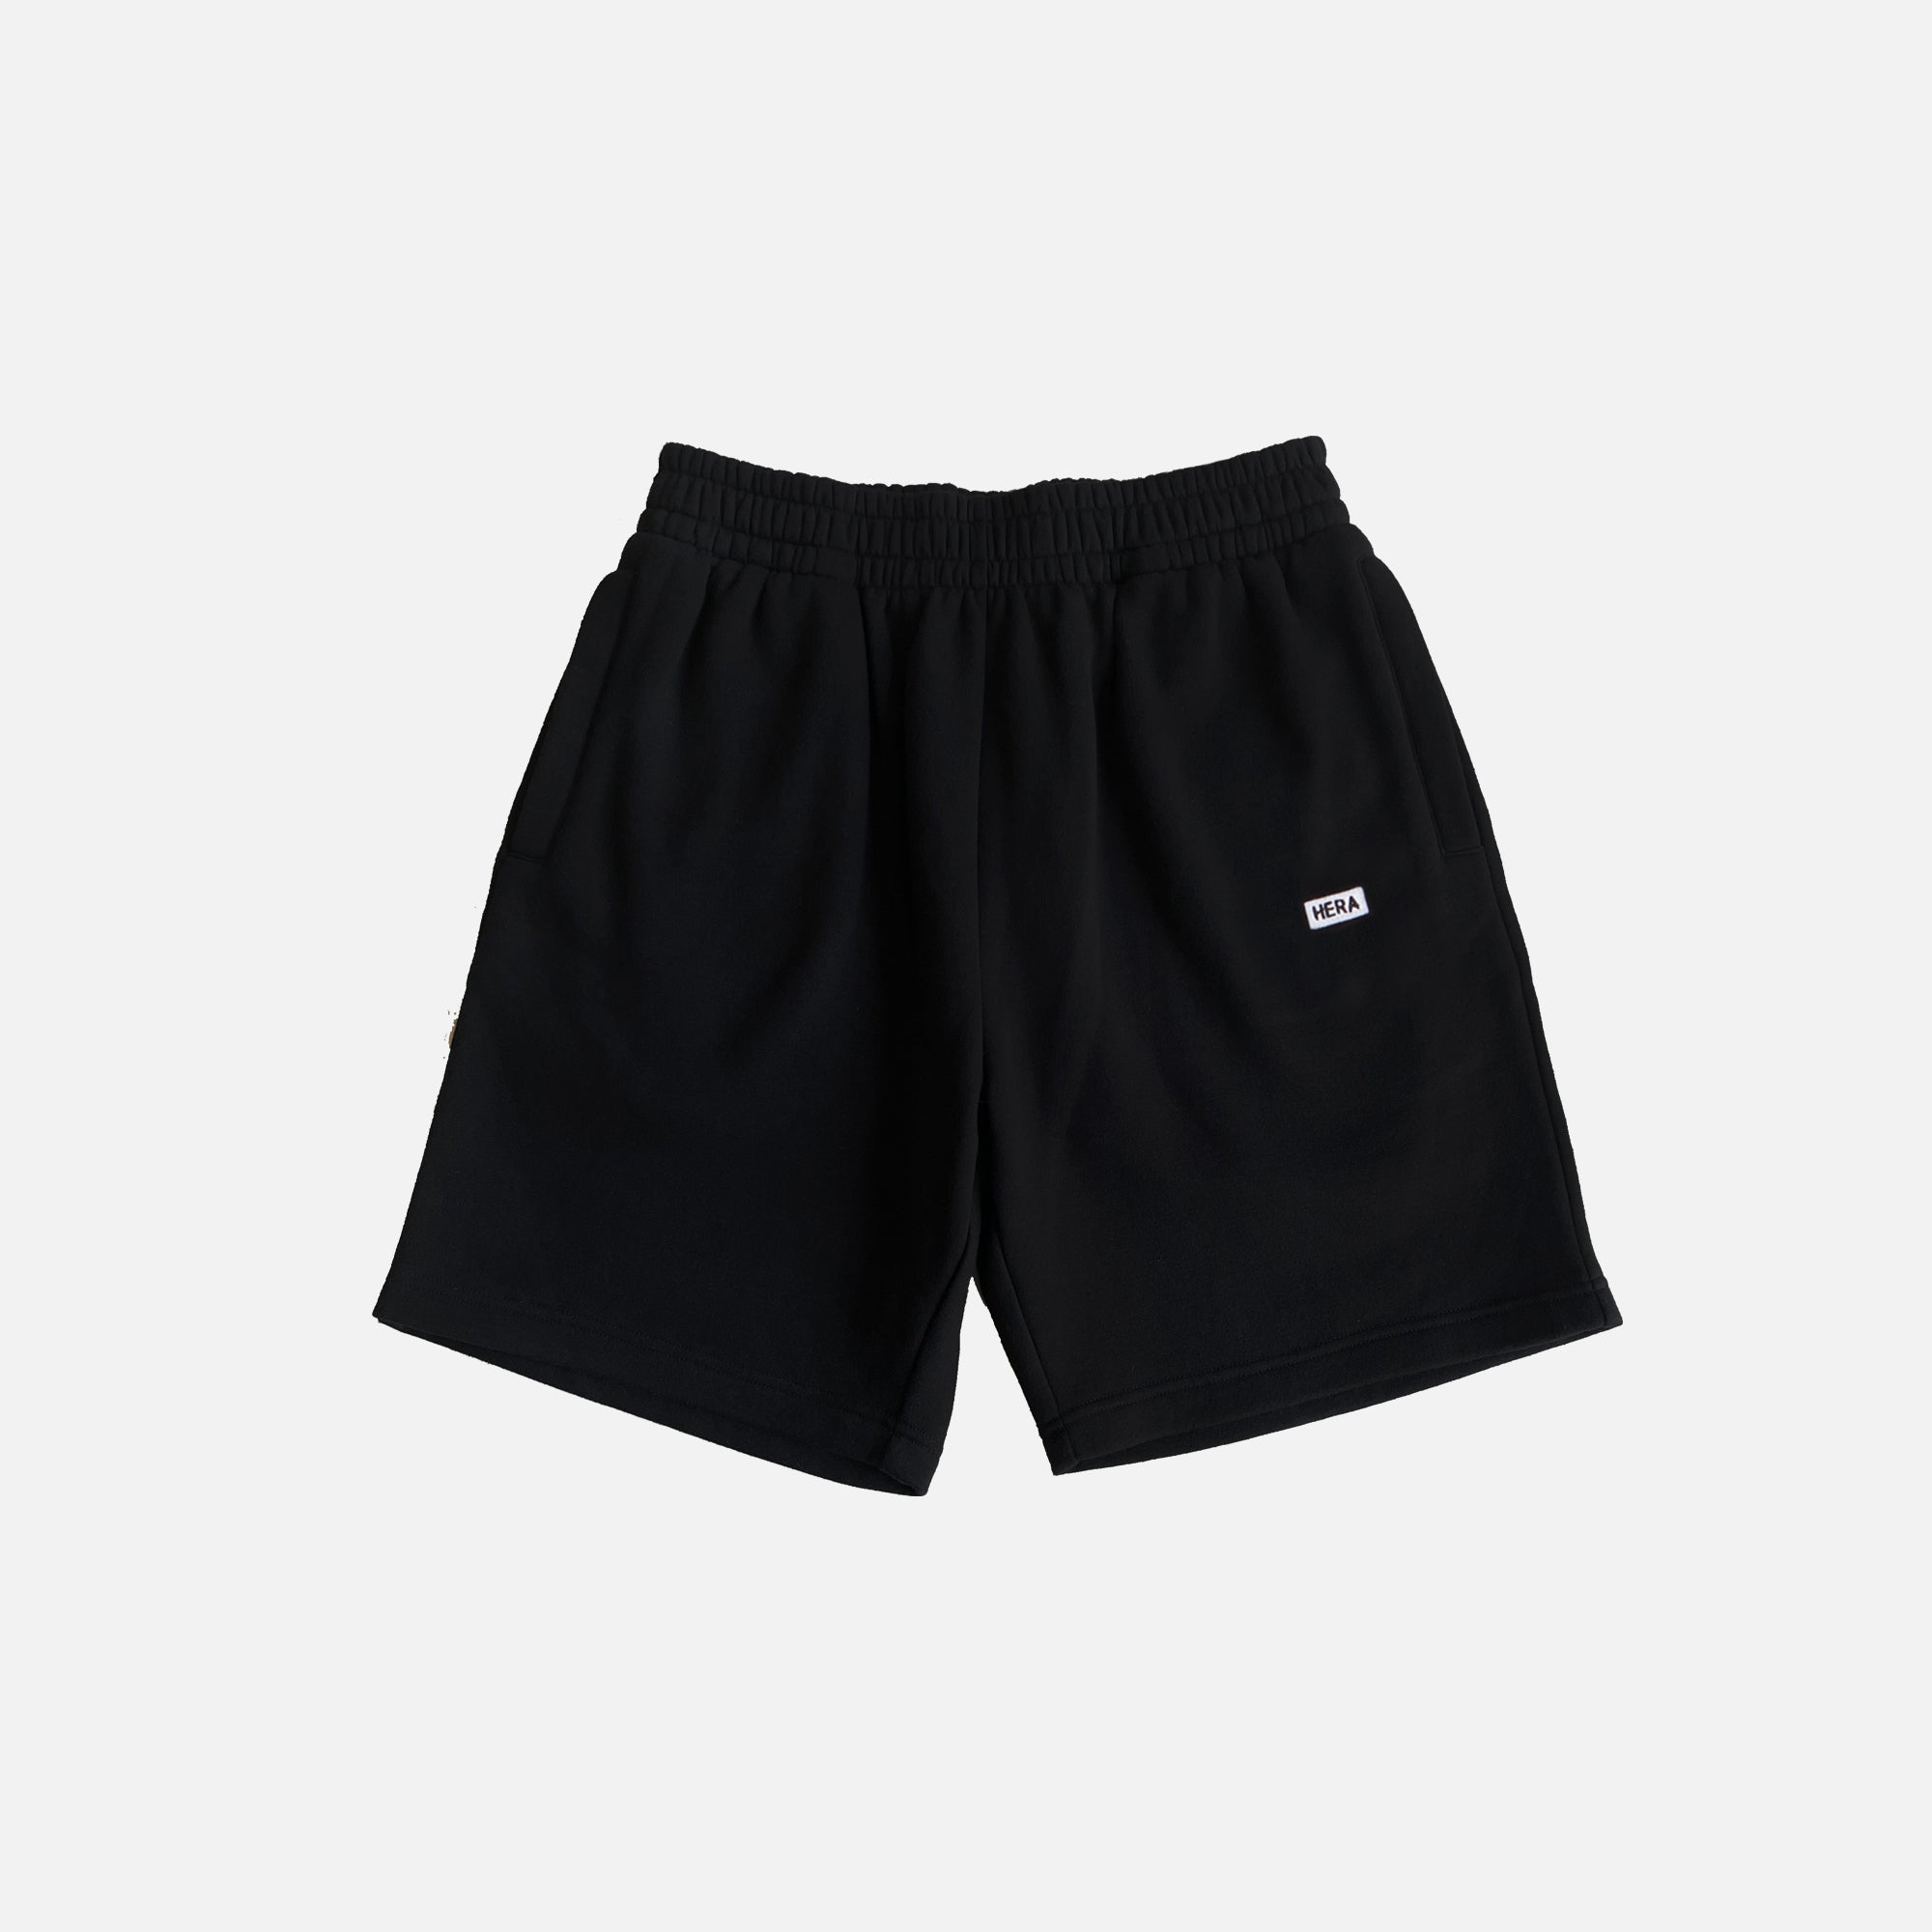 BLACK PREMIUM SWEATSHORTS - WILL BE DESPATCHED ON THE 12TH MAY